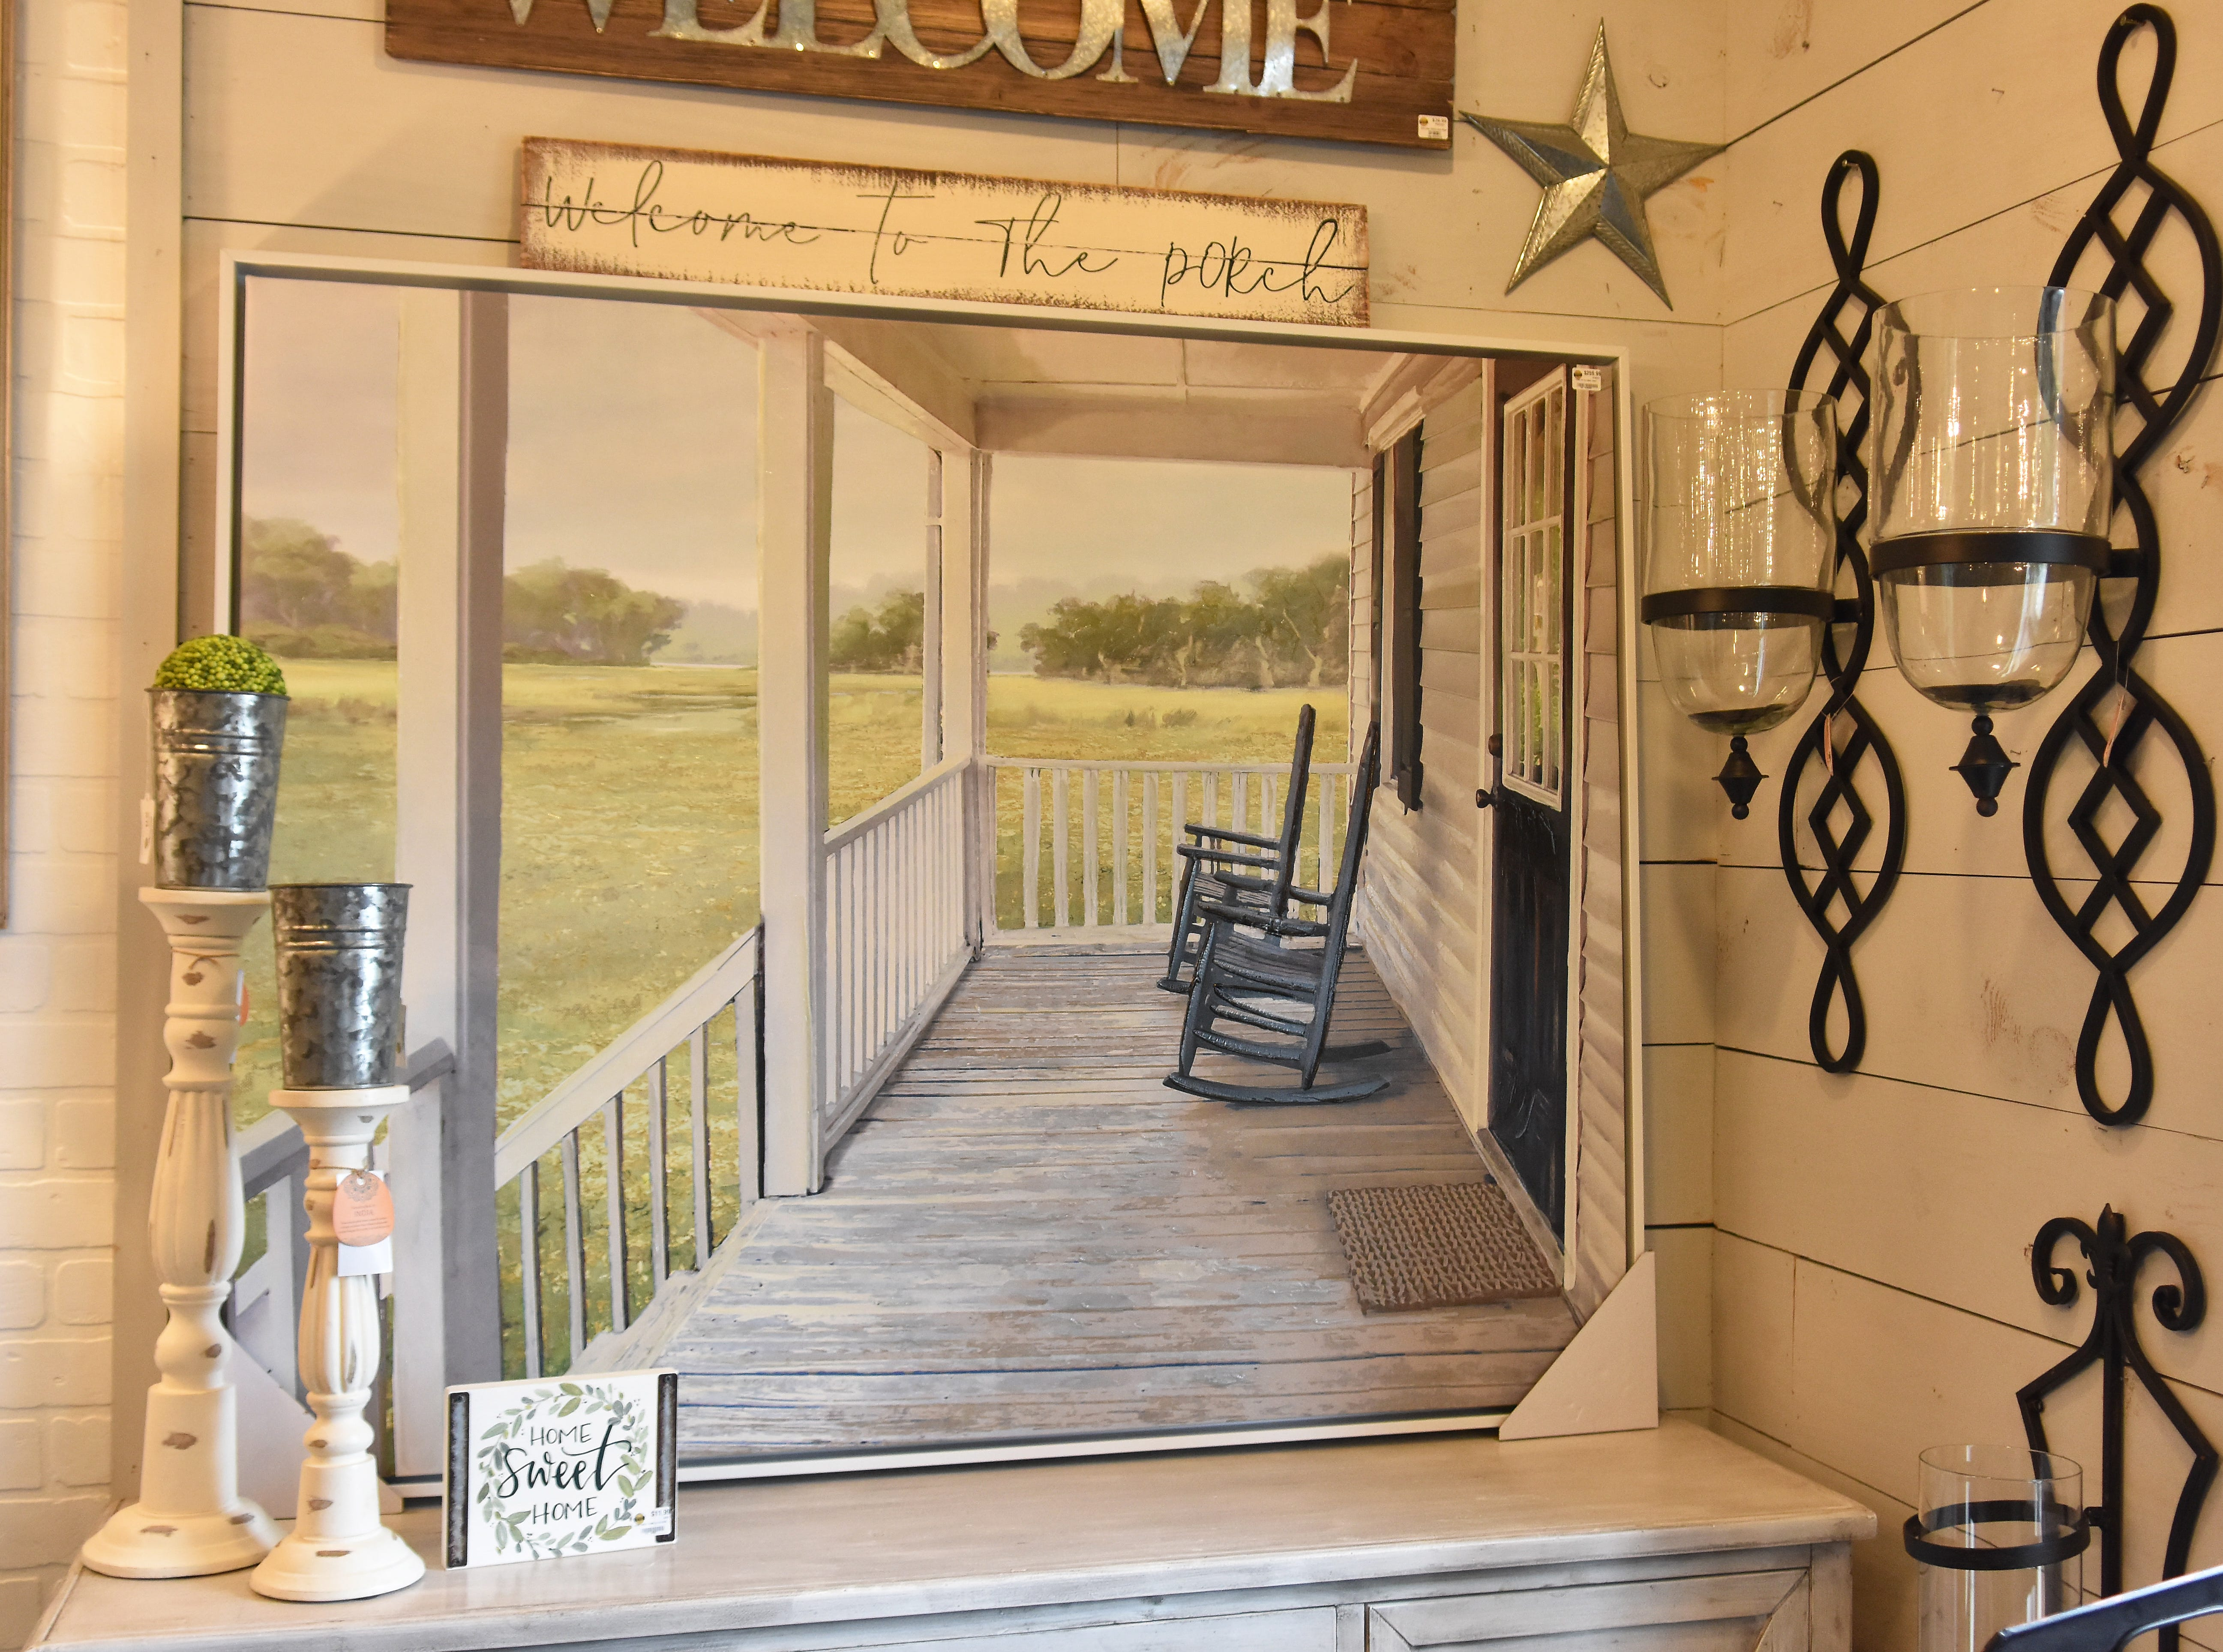 The painting of a front porch makes a nice focal piece over a hutch or side table.